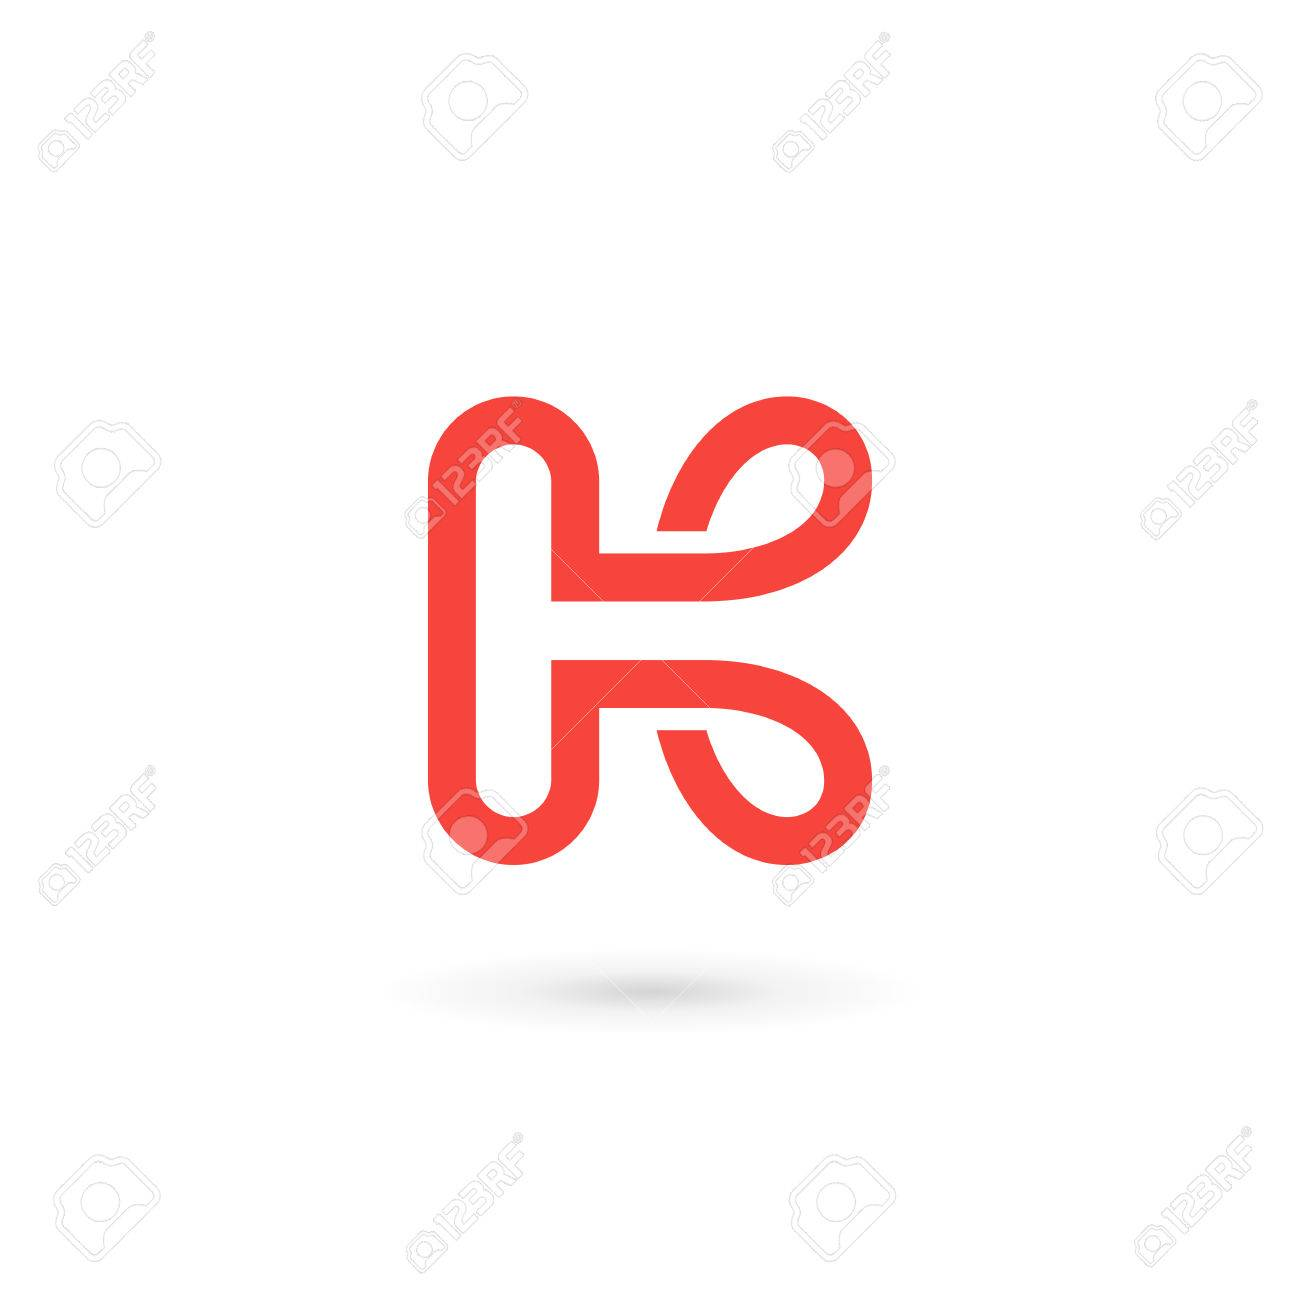 Letter k logo icon design template elements royalty free cliparts letter k logo icon design template elements stock vector 75344415 spiritdancerdesigns Choice Image